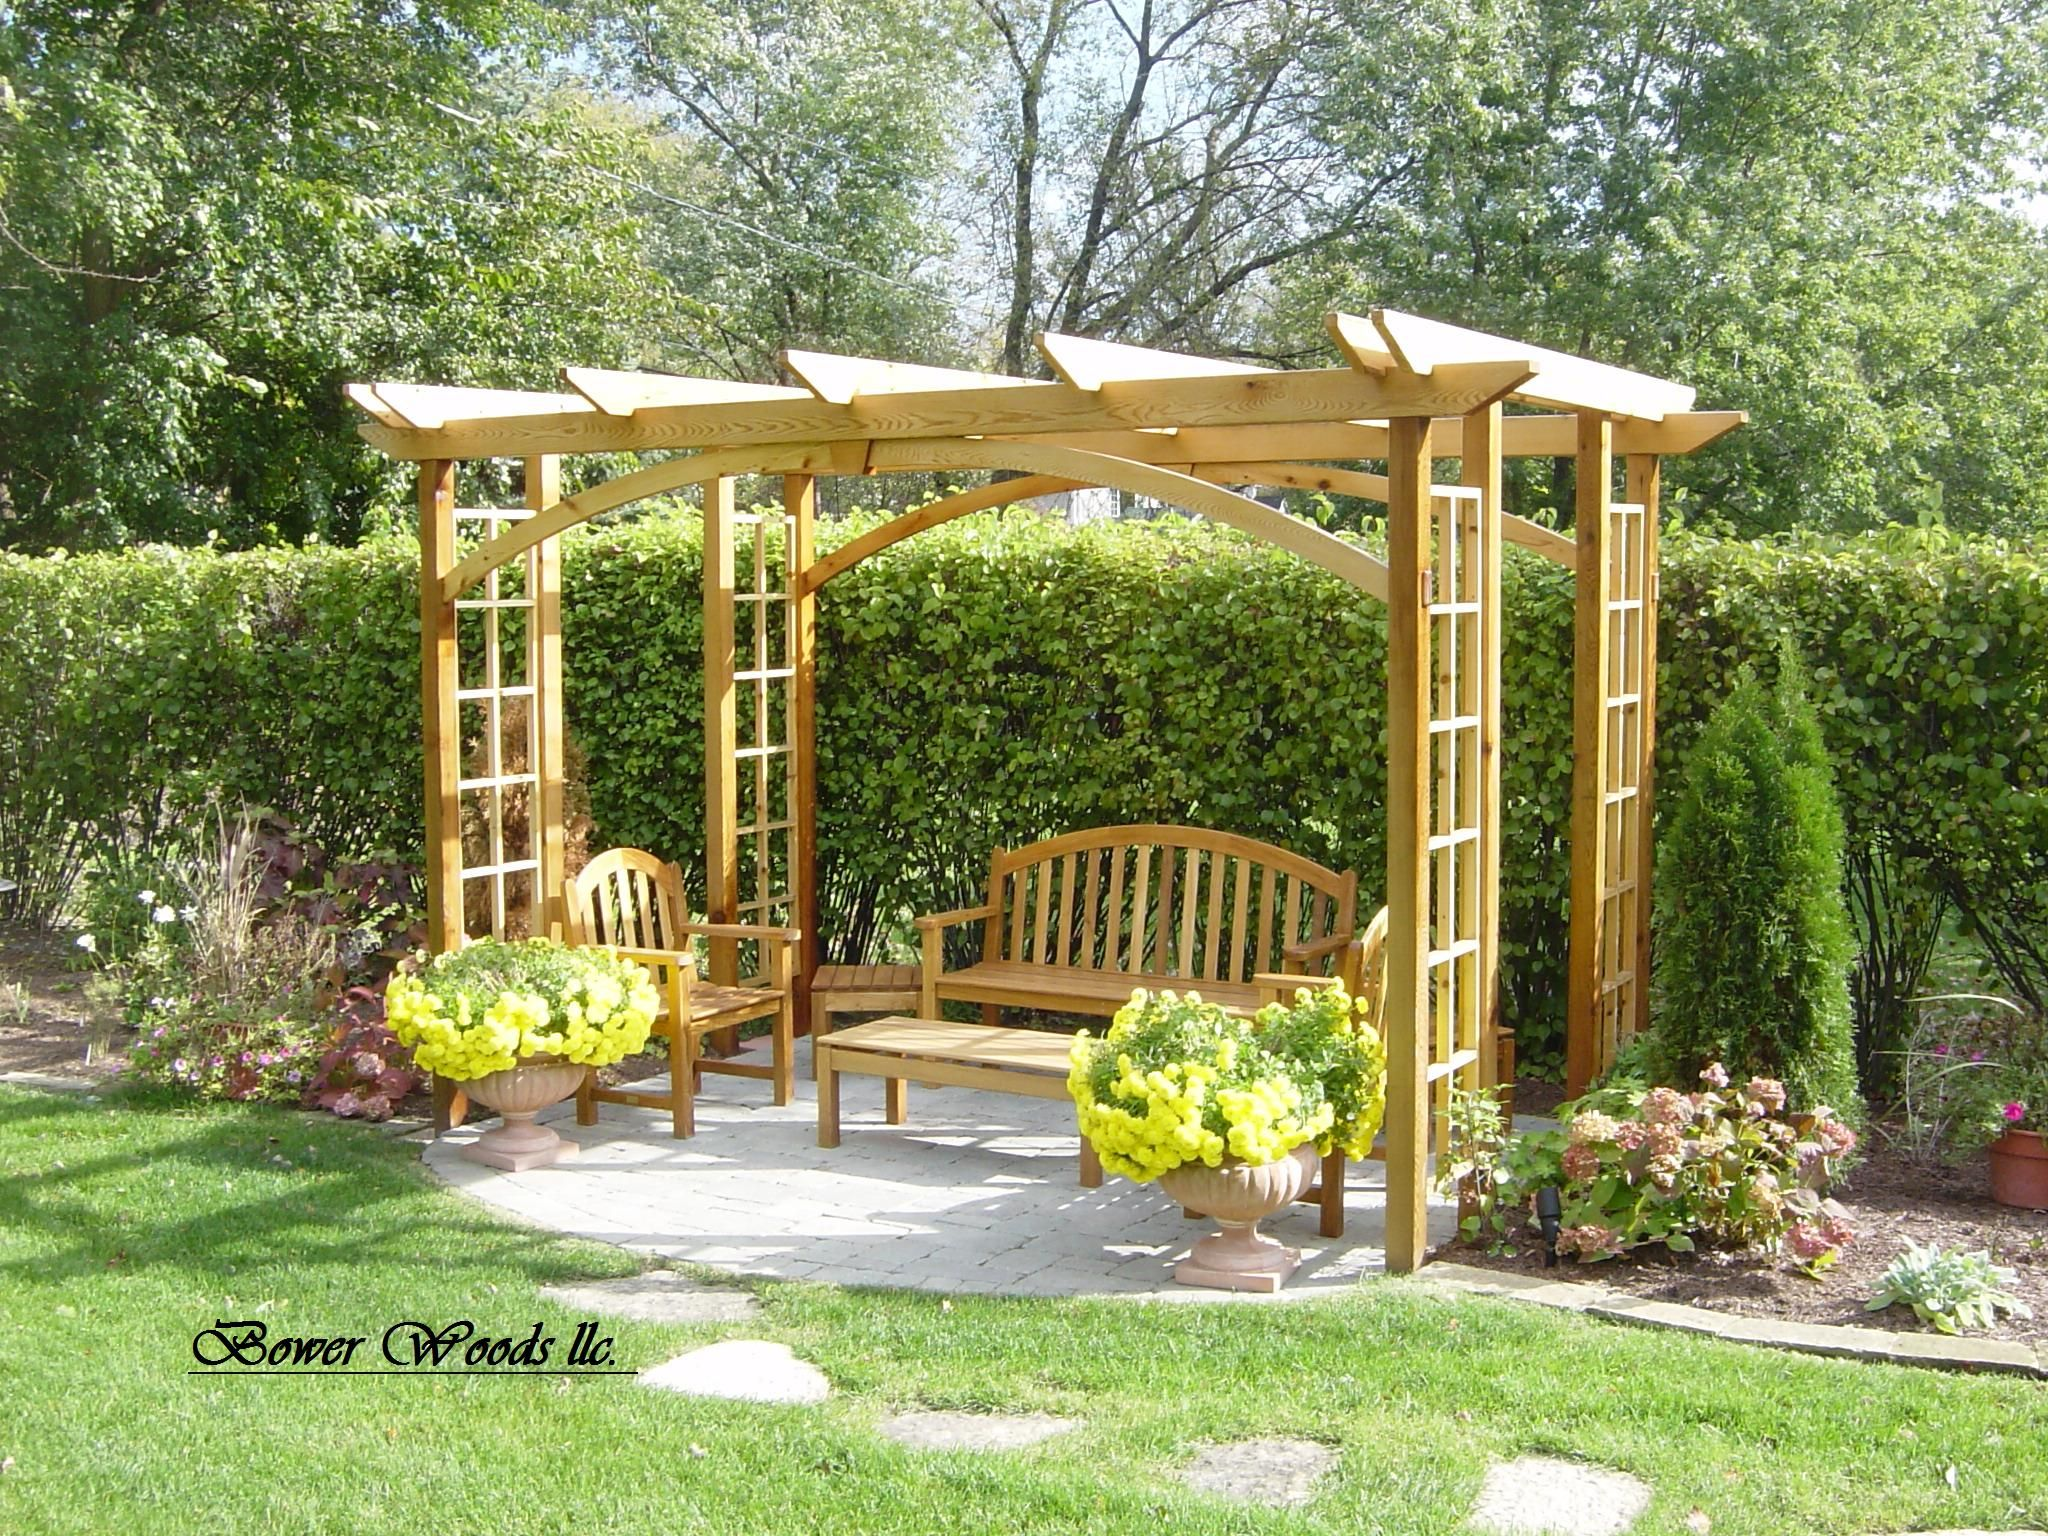 Bower woods llc custom garden structures traditional for Garden design kits